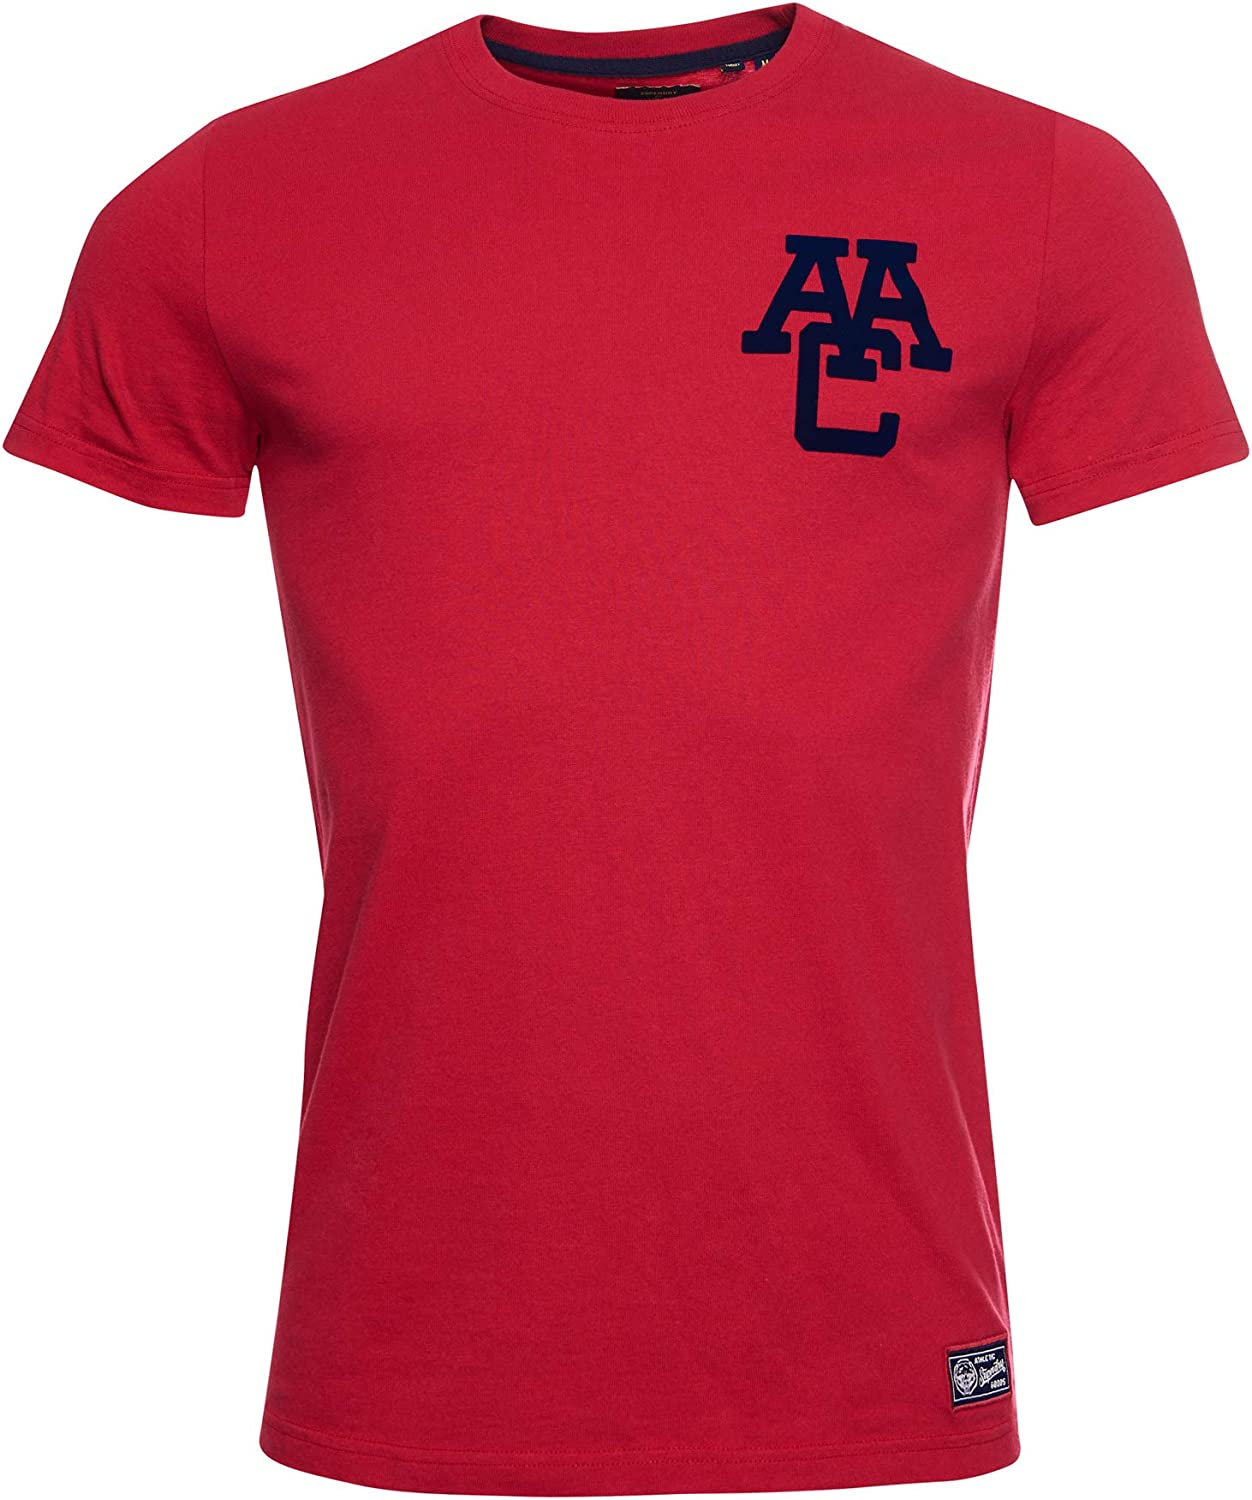 Superdry AAC Graphic tee 180 para Hombre